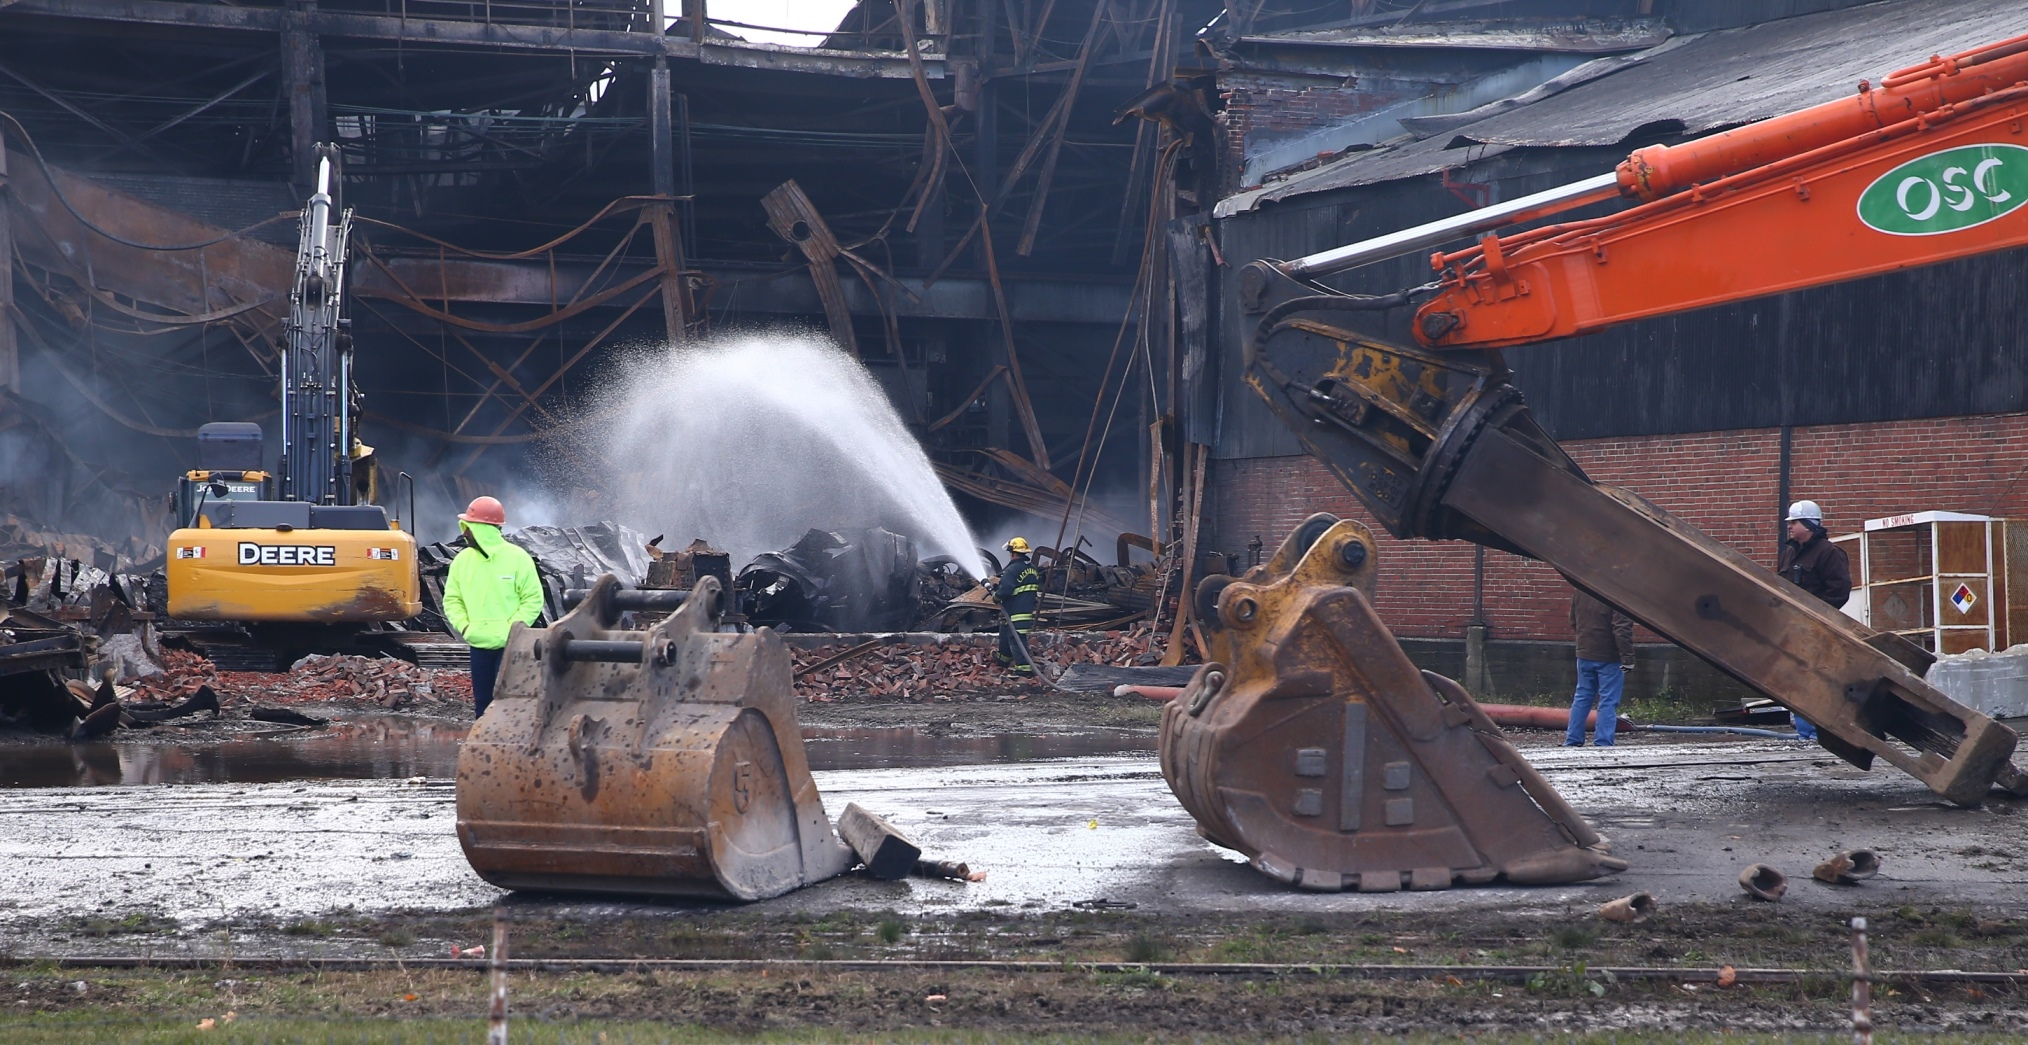 Crews work on putting out hot spots after demolition work on Friday, Nov. 11, 2016. (John Hickey/Buffalo News)